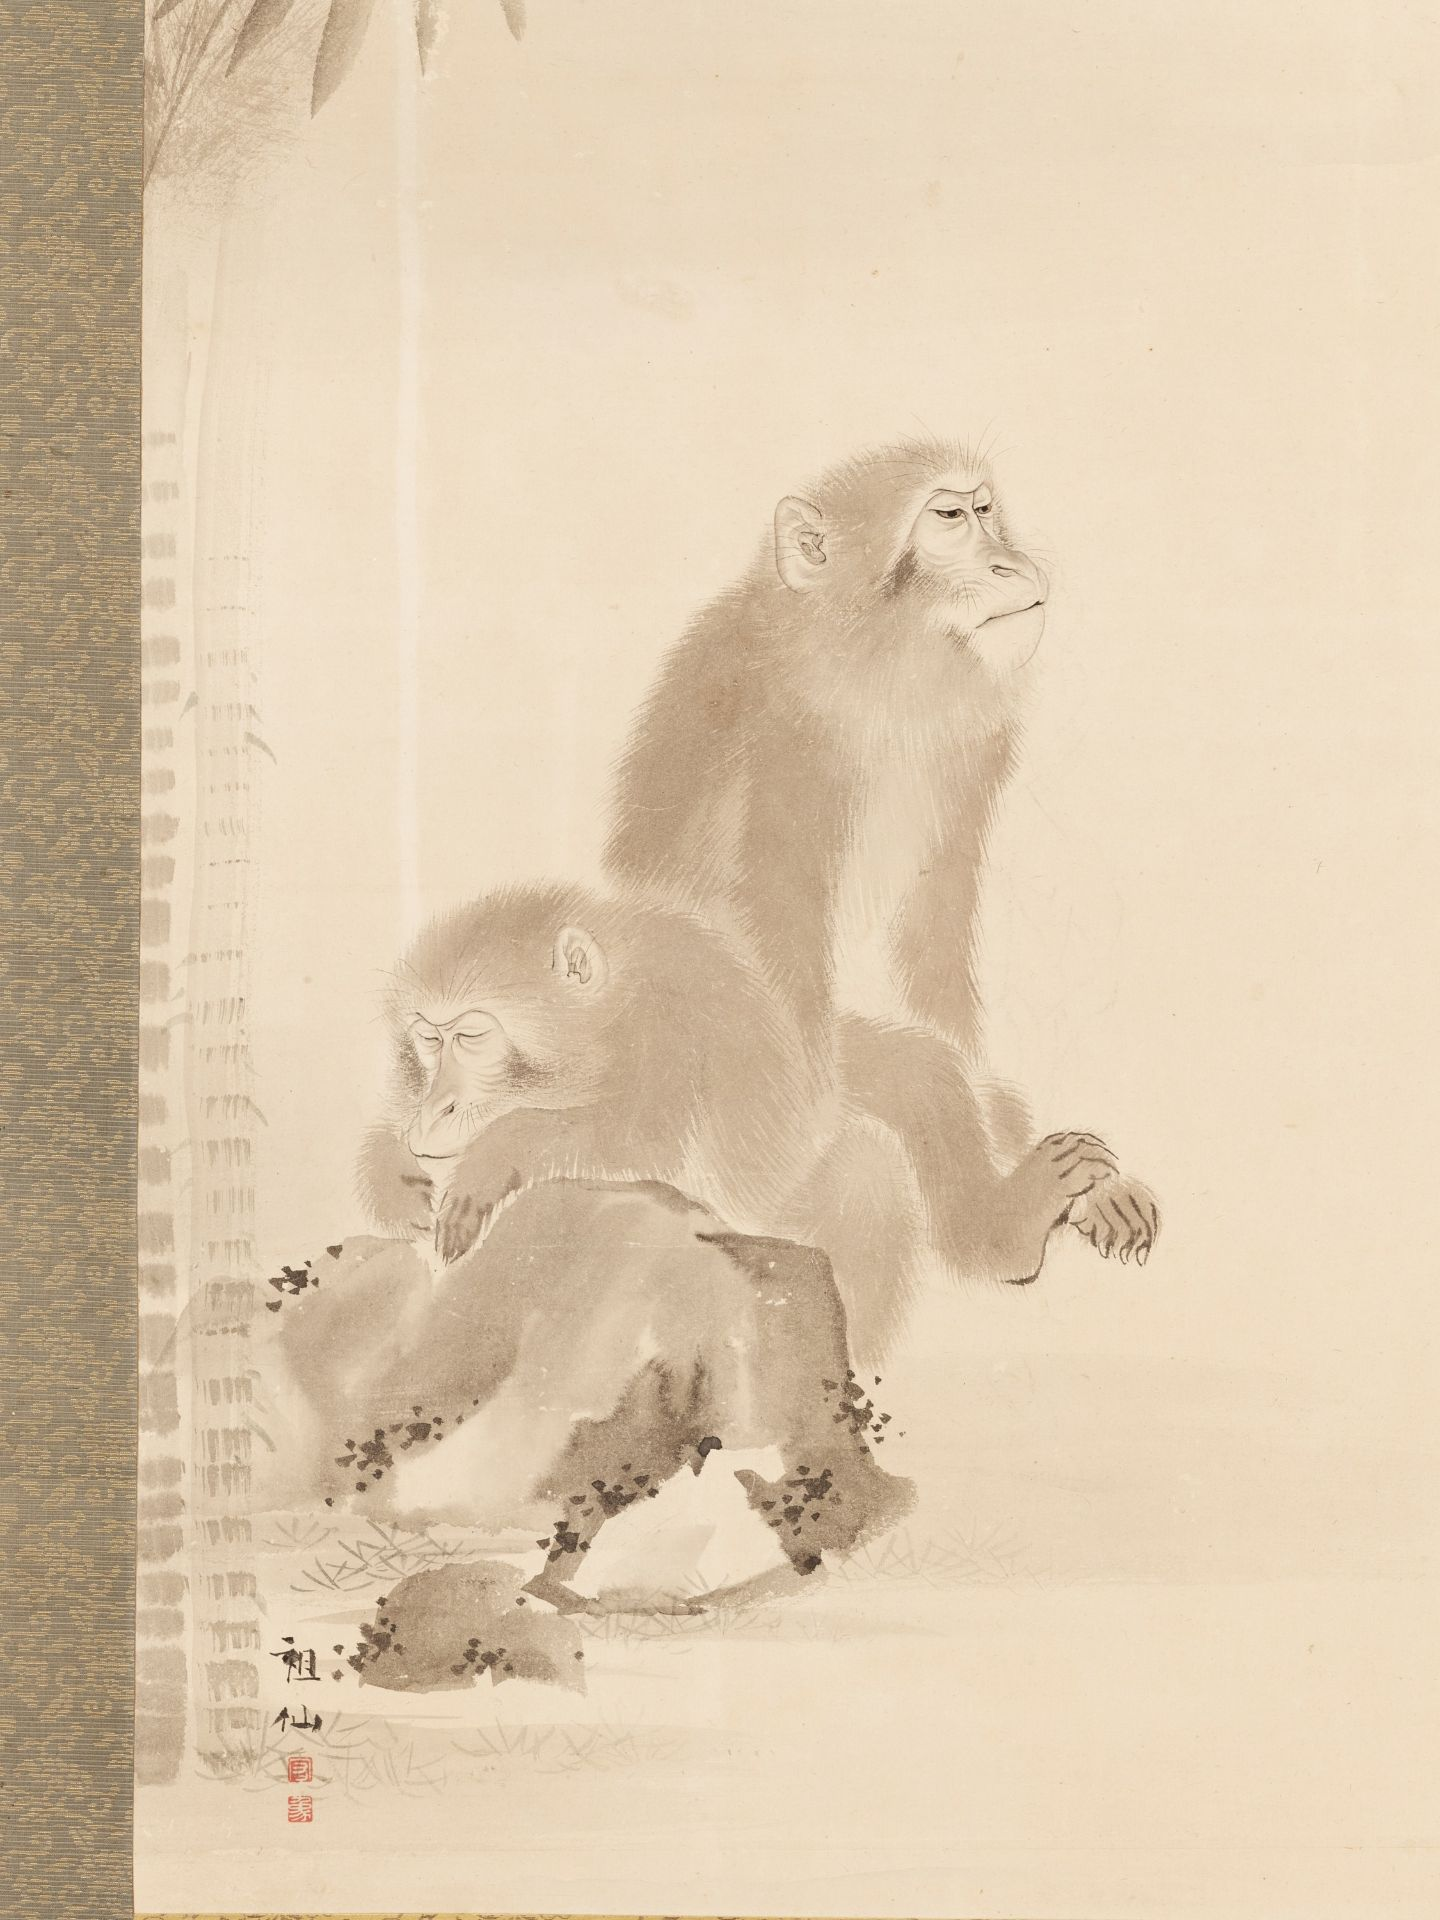 MORI SOSEN: A FINE SCROLL PAINTING OF TWO MONKEYS - Image 2 of 8